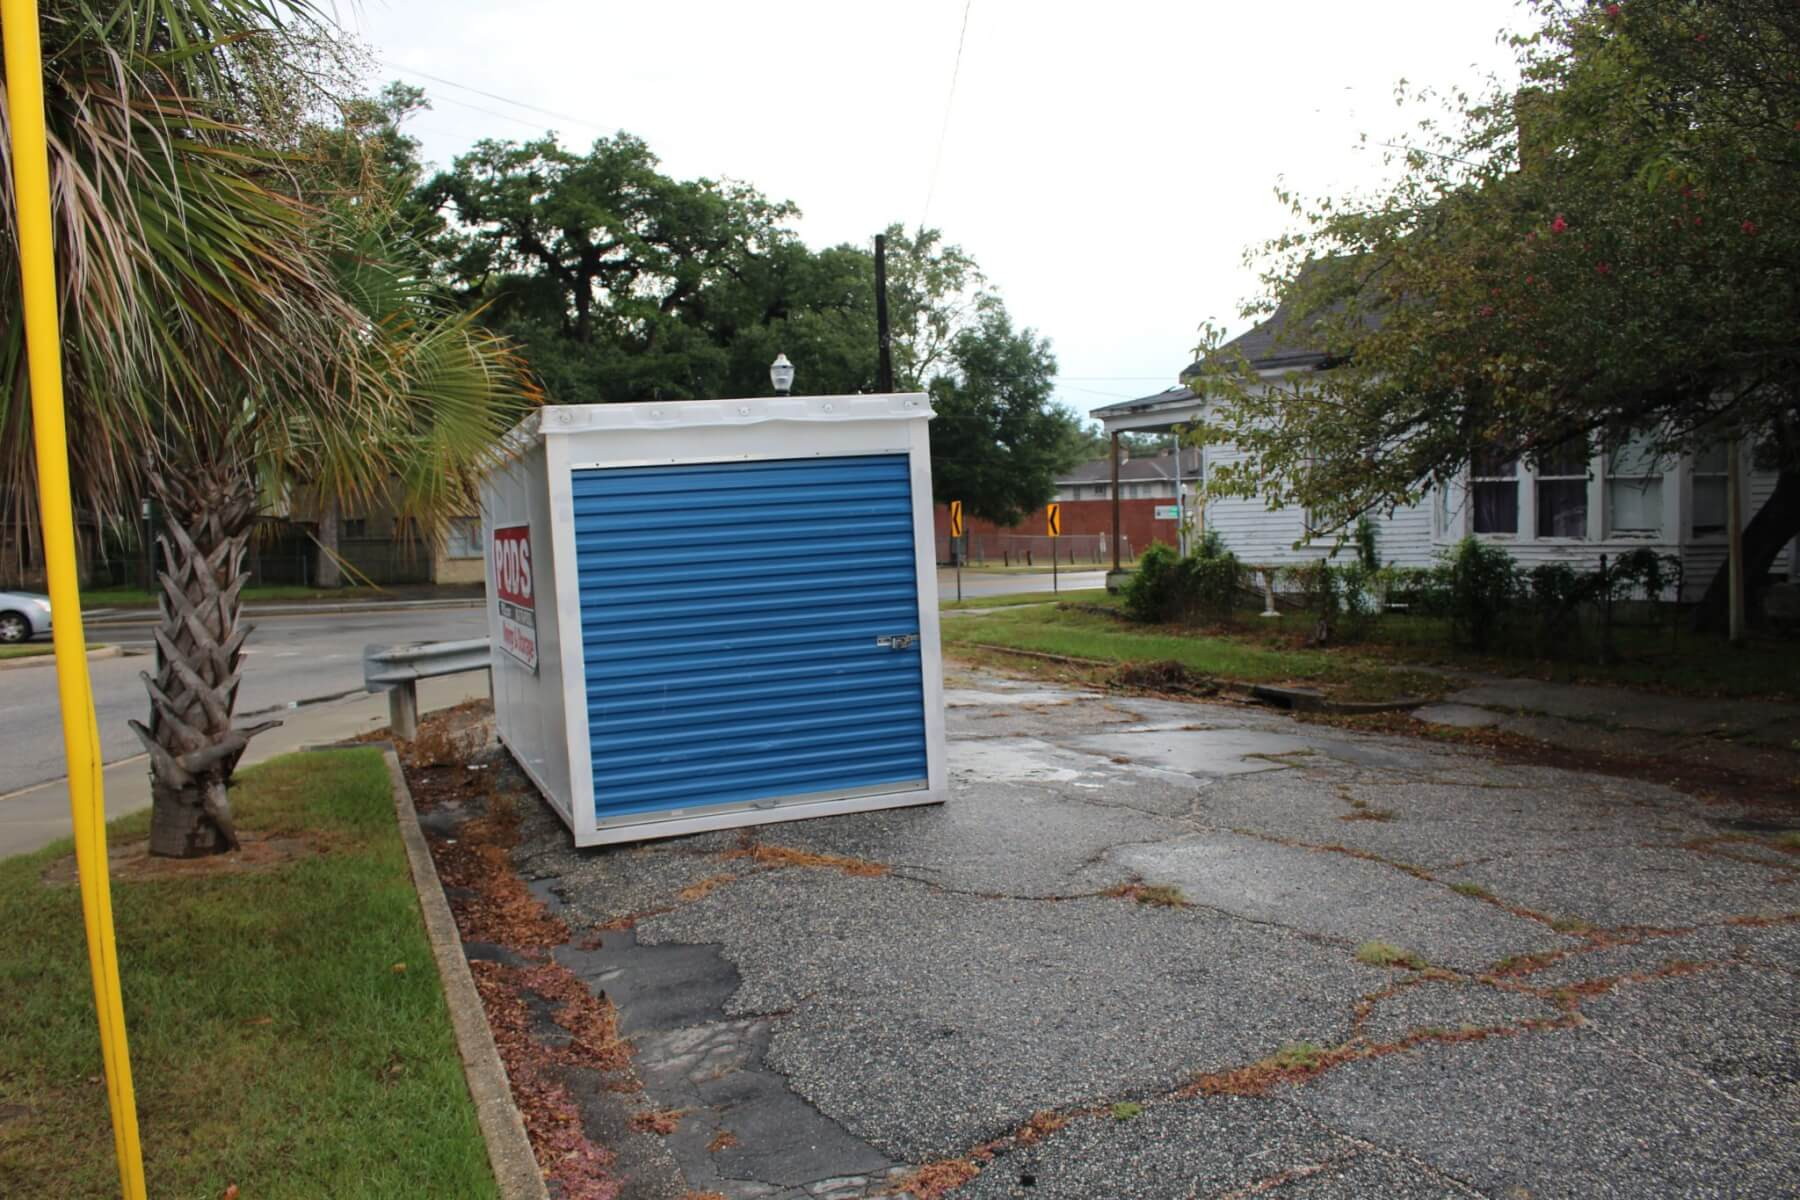 A portable storage unit sits next to a barricade on Canal Street across from property city GIS maps indicate is owned by State Rep. Adline Clarke & State lawmaker to move storage unit off public ROW - Lagniappe Mobile